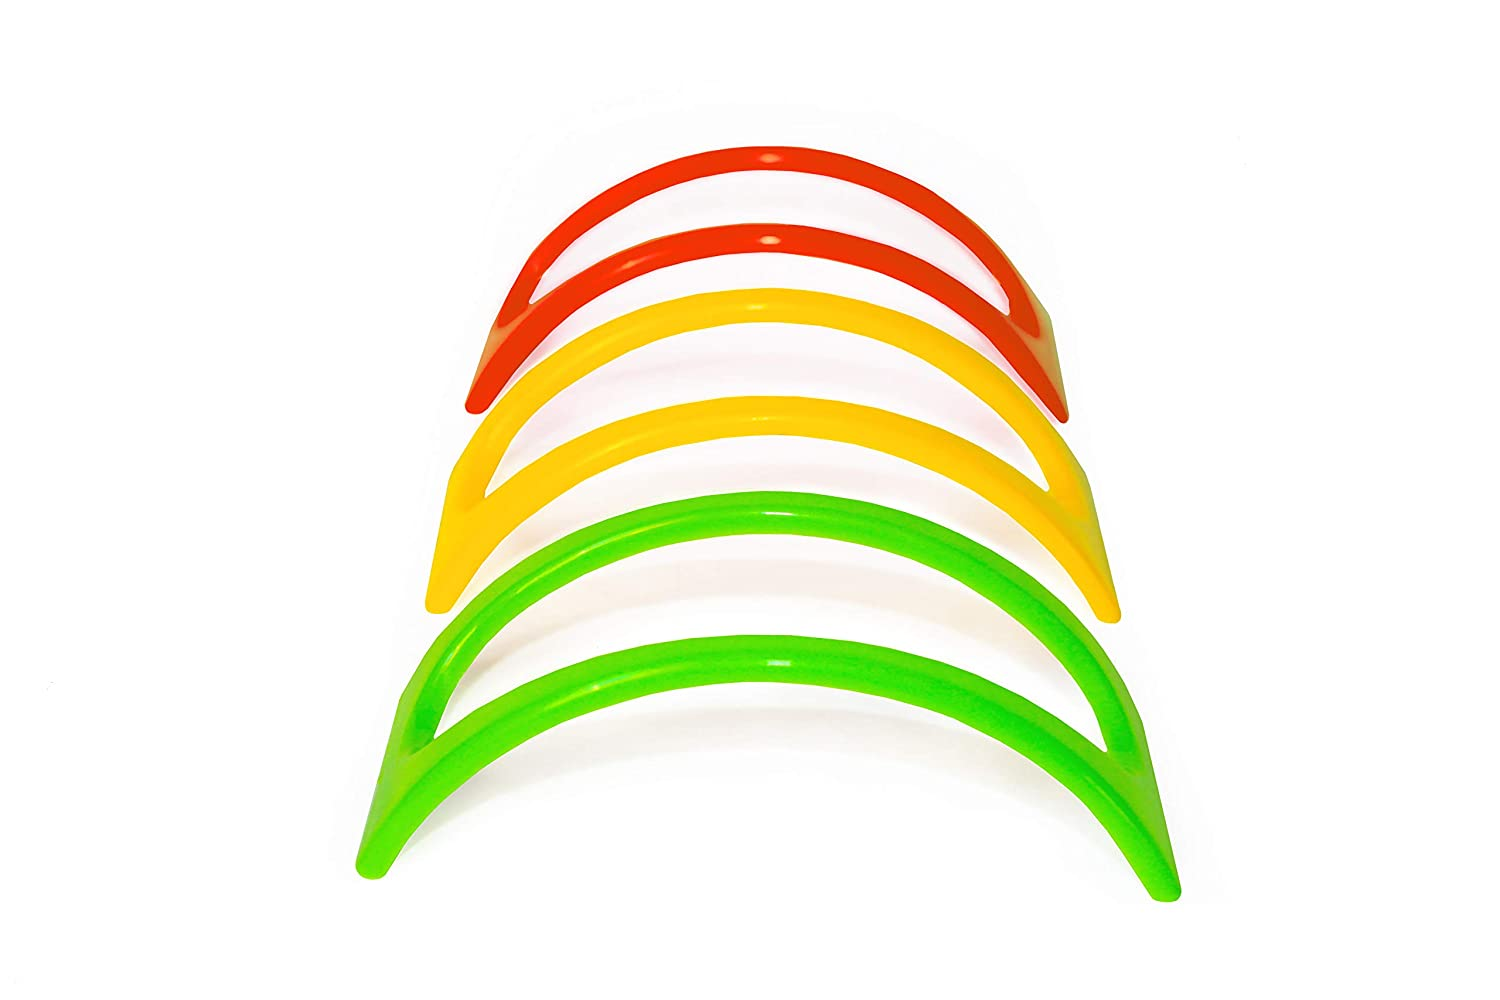 Taco Holder Set of 12, Plastic Taco Stand, Holders Plate for Mexican Taco, Rack Truck Tray style, 3 colors Red Yellow Green, Non Toxic BPA. Bonus Recipe E-book Estico